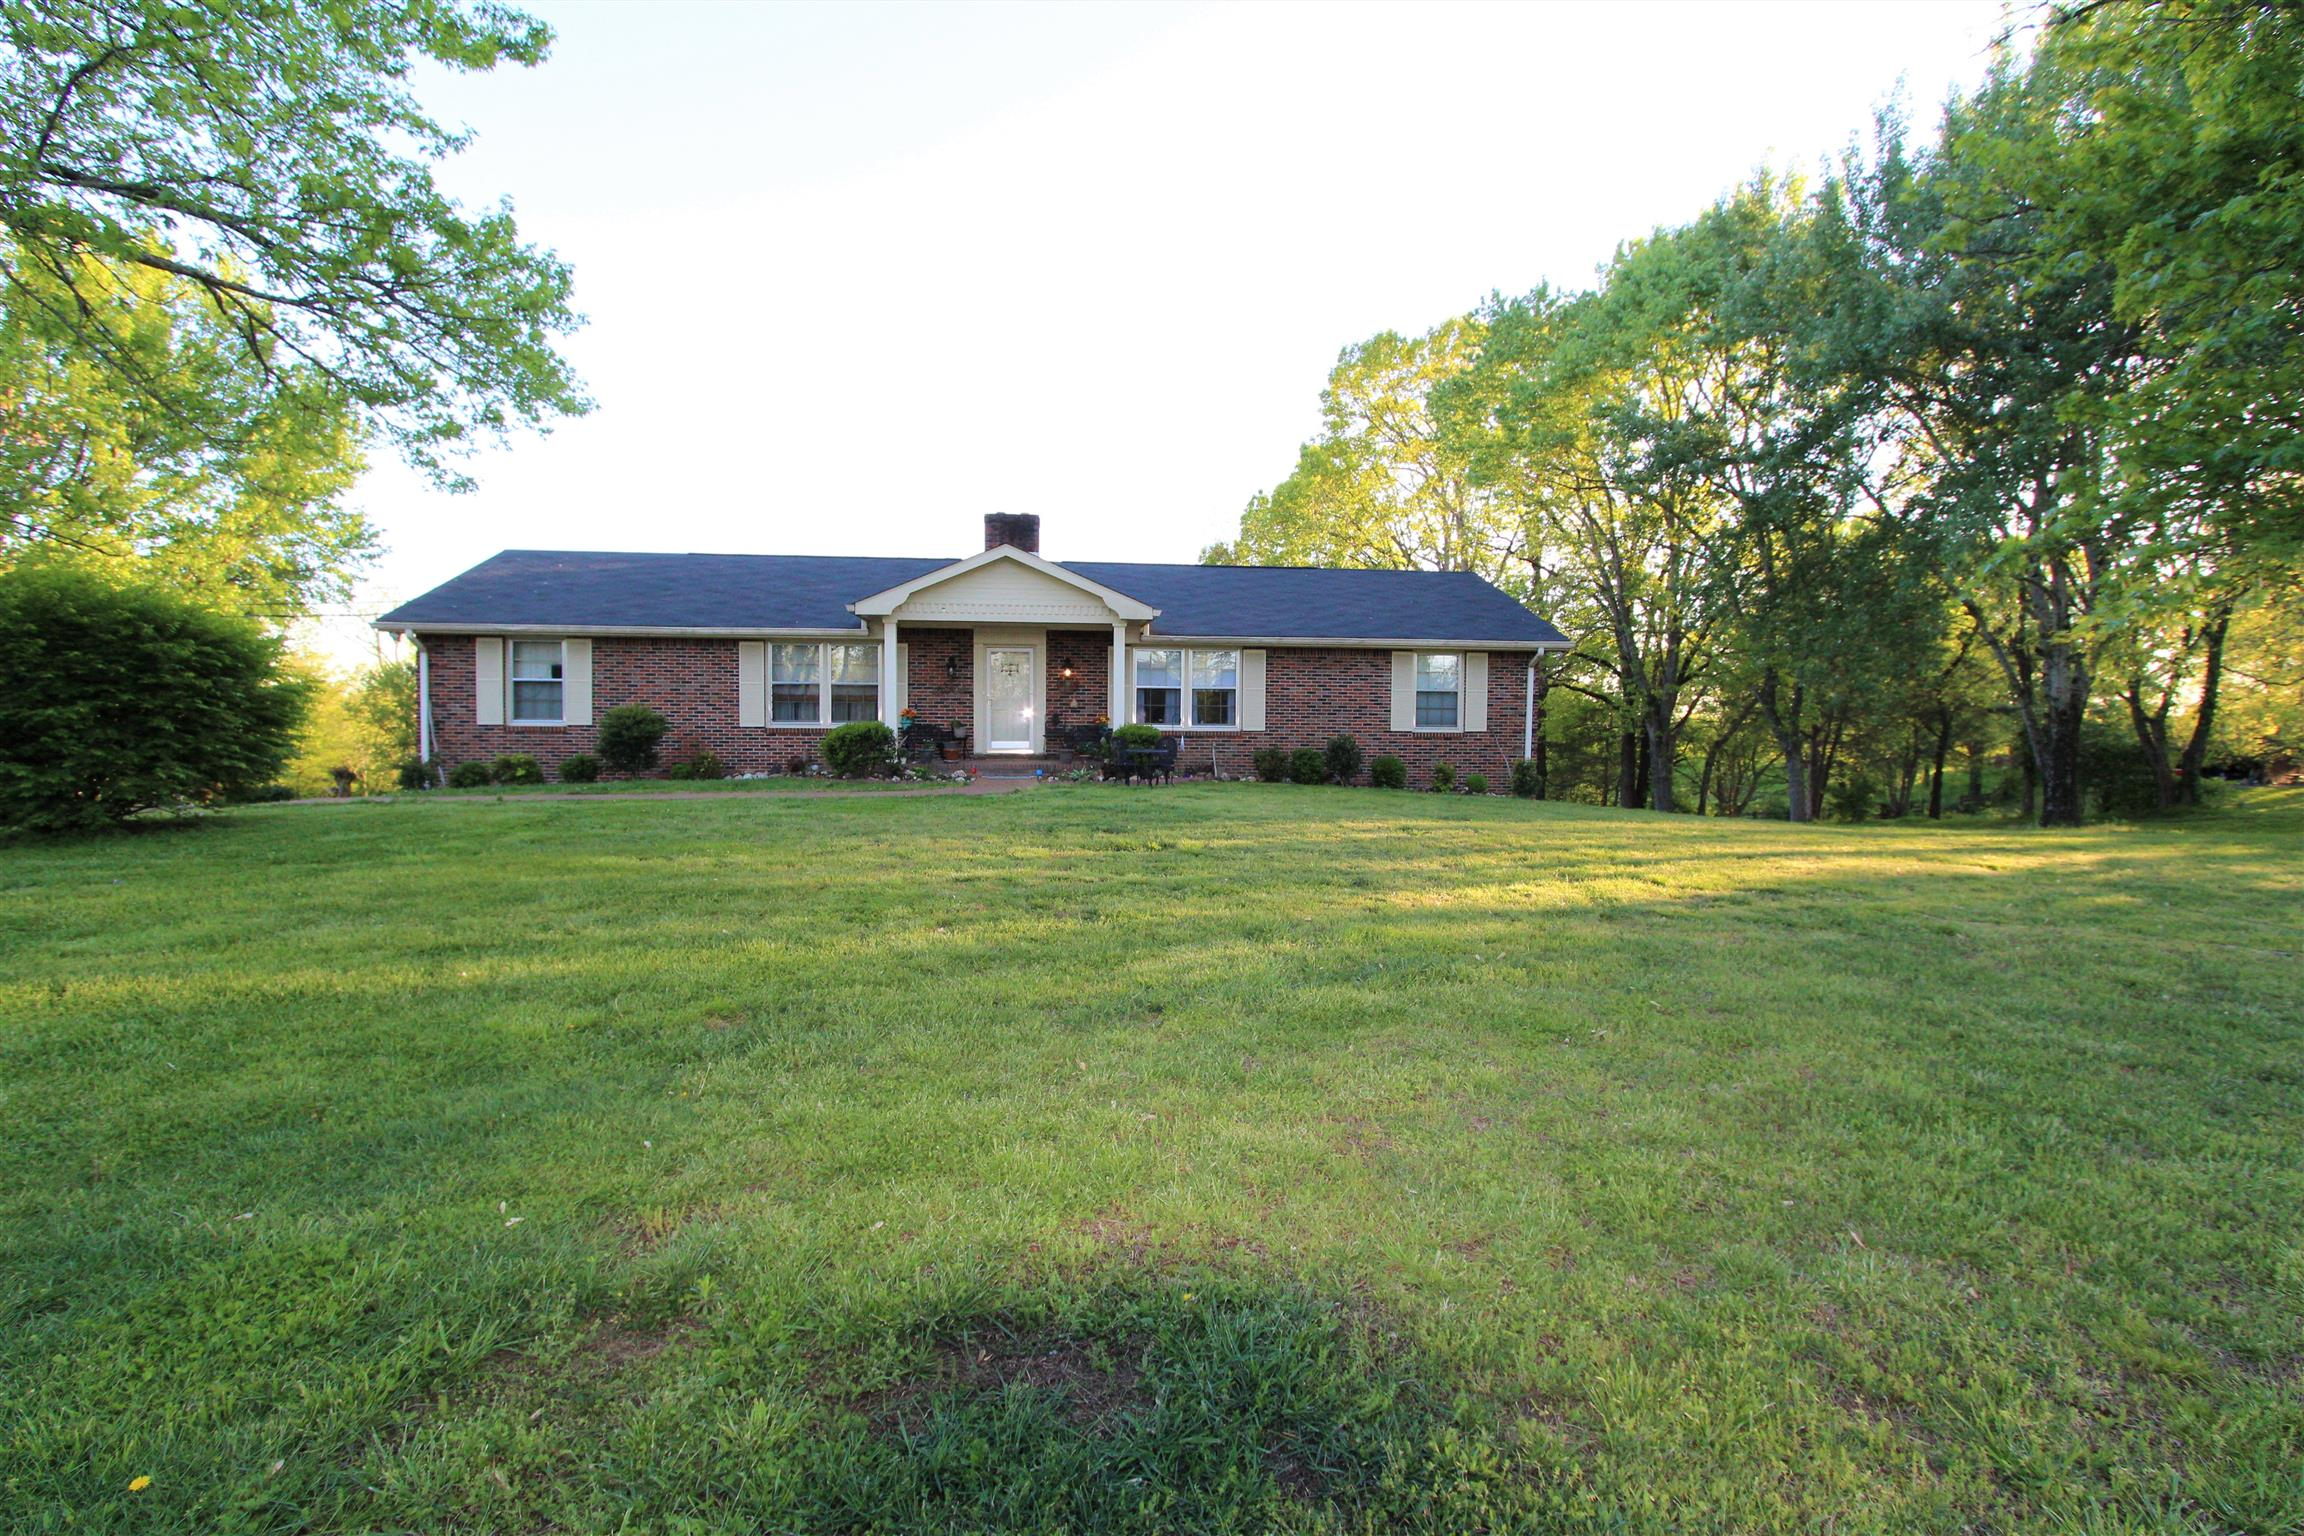 3392 Old Franklin Rd, Antioch, TN 37013 - Antioch, TN real estate listing